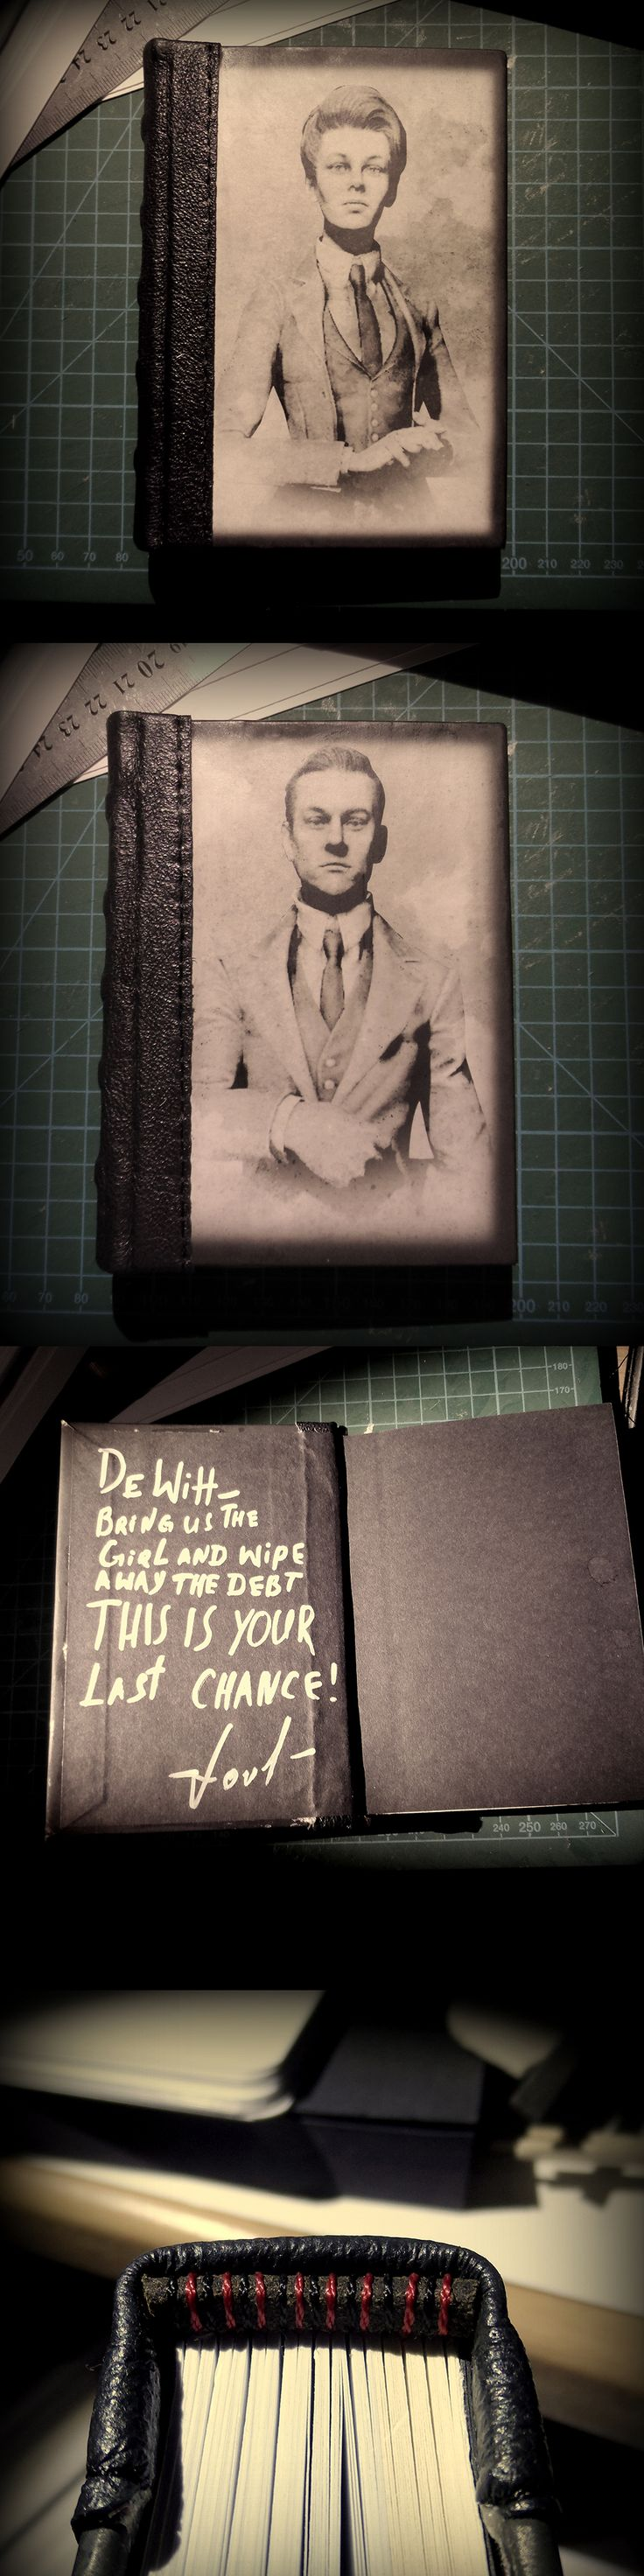 Notebook inspired by Lutece twins from Bioshock Infinite.